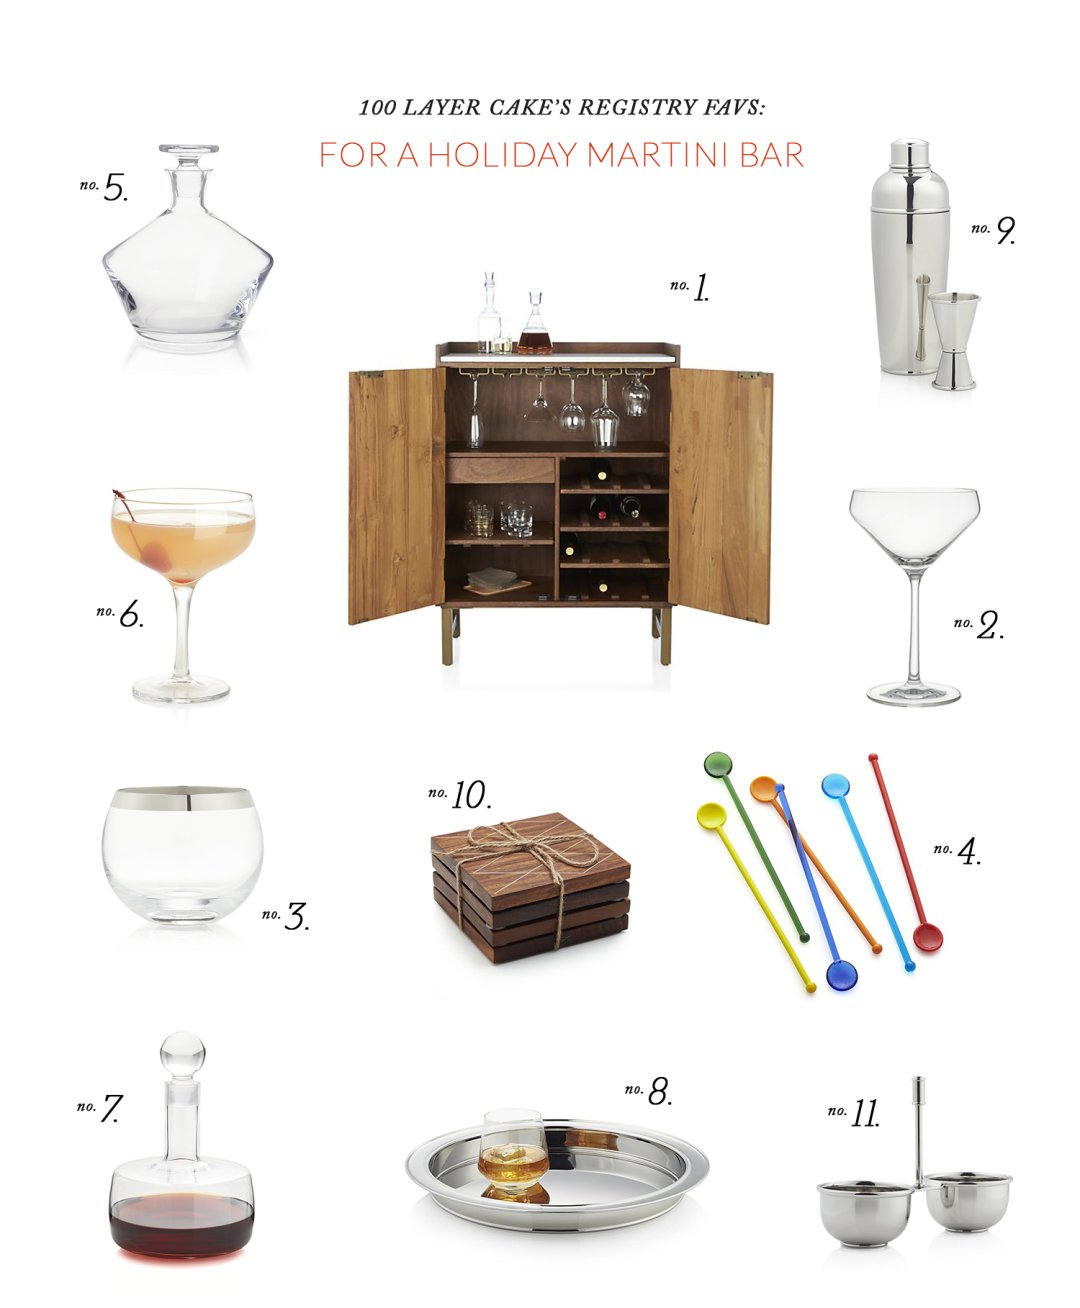 martini bar and accessories to make martinis spread out on a white page and numbered from 1 to 11